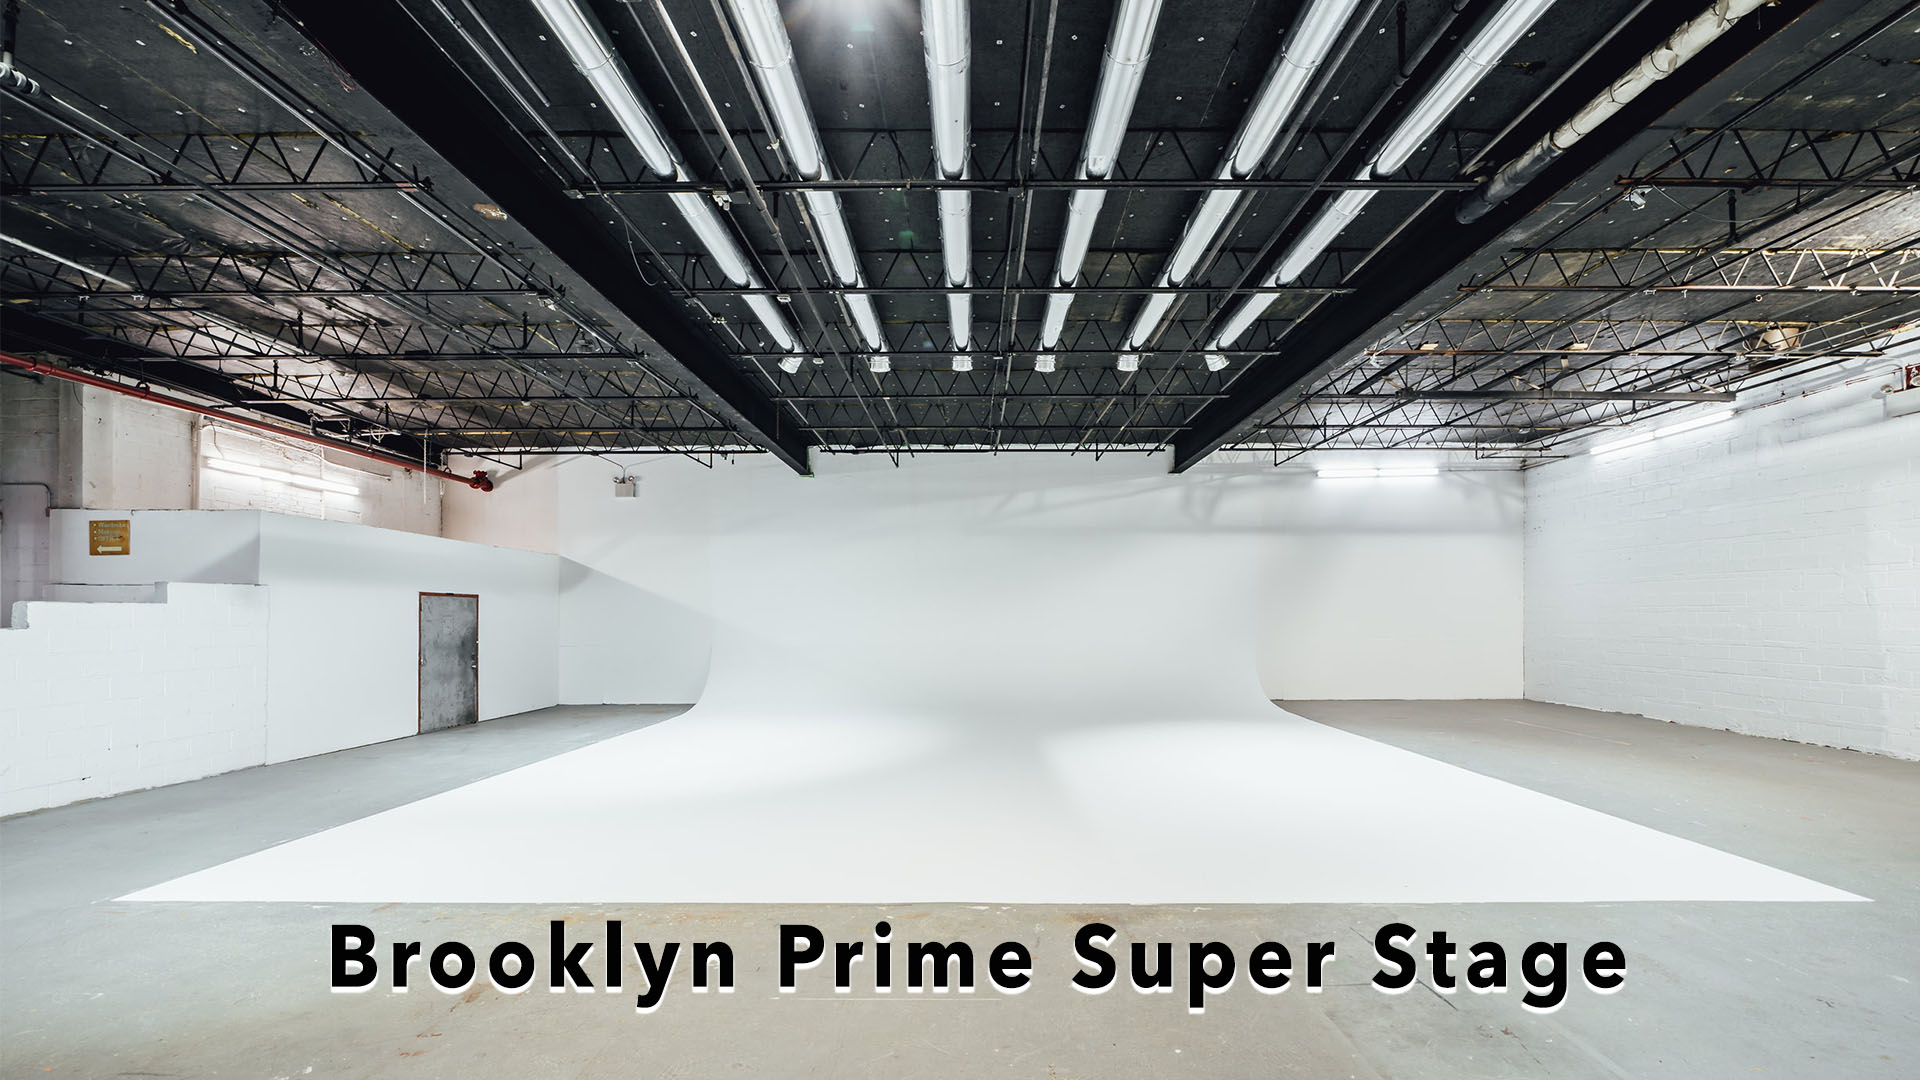 Brooklyn Prime Super Stage